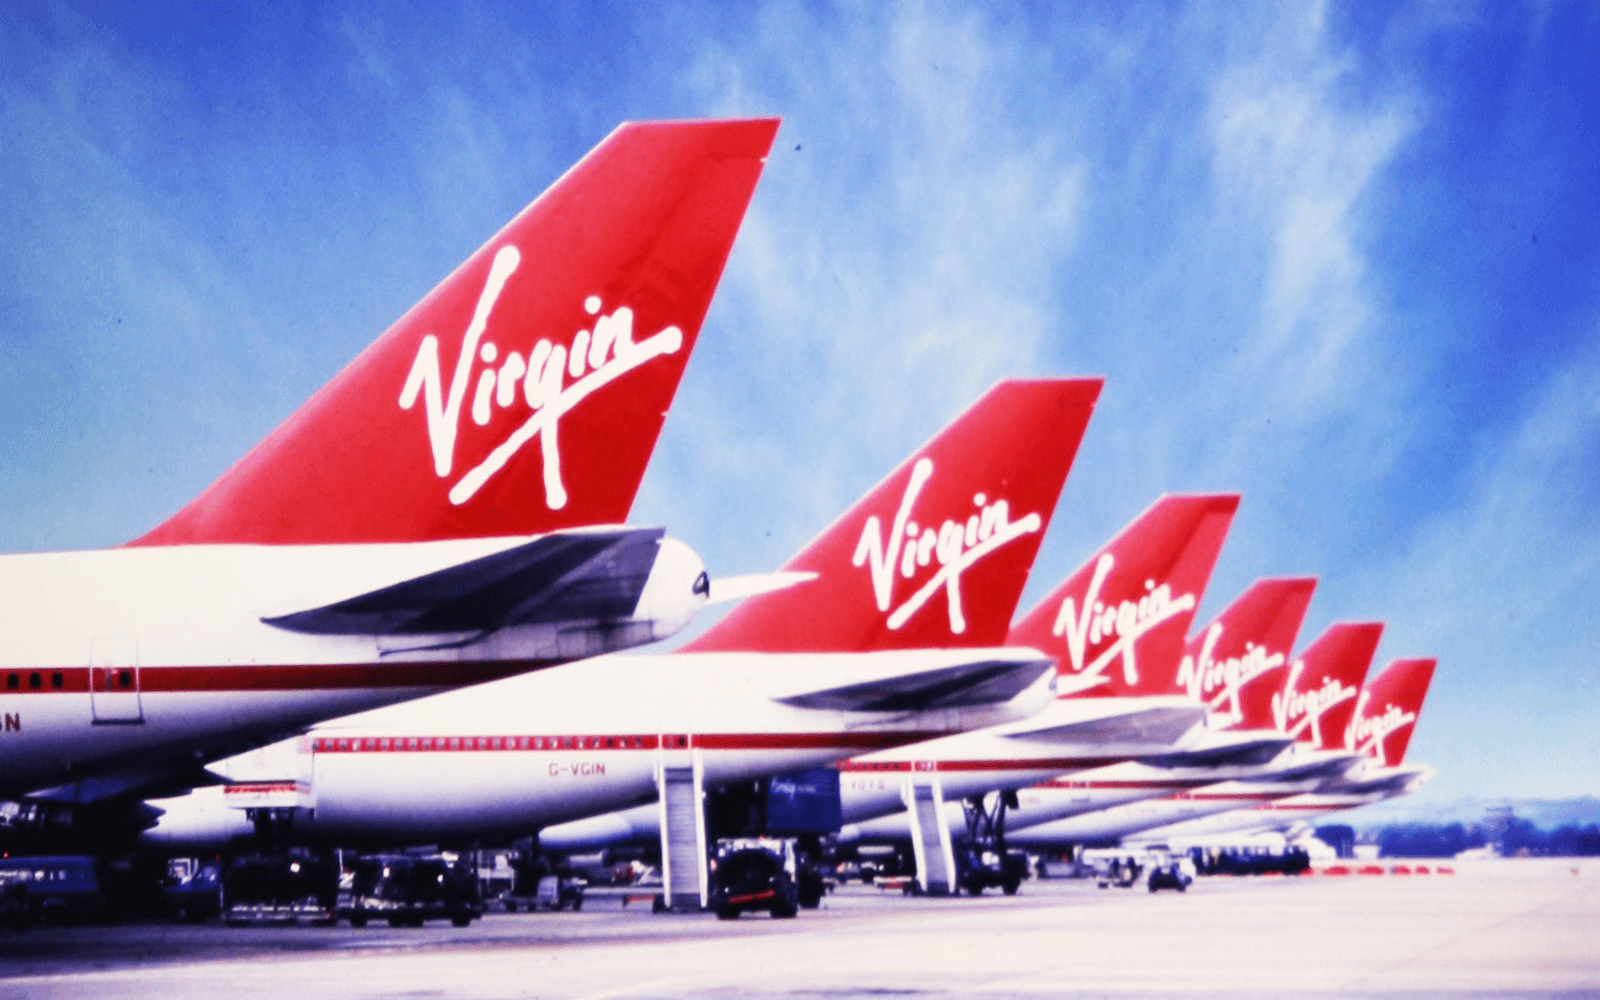 A row of Virgin Atlantic historic livery